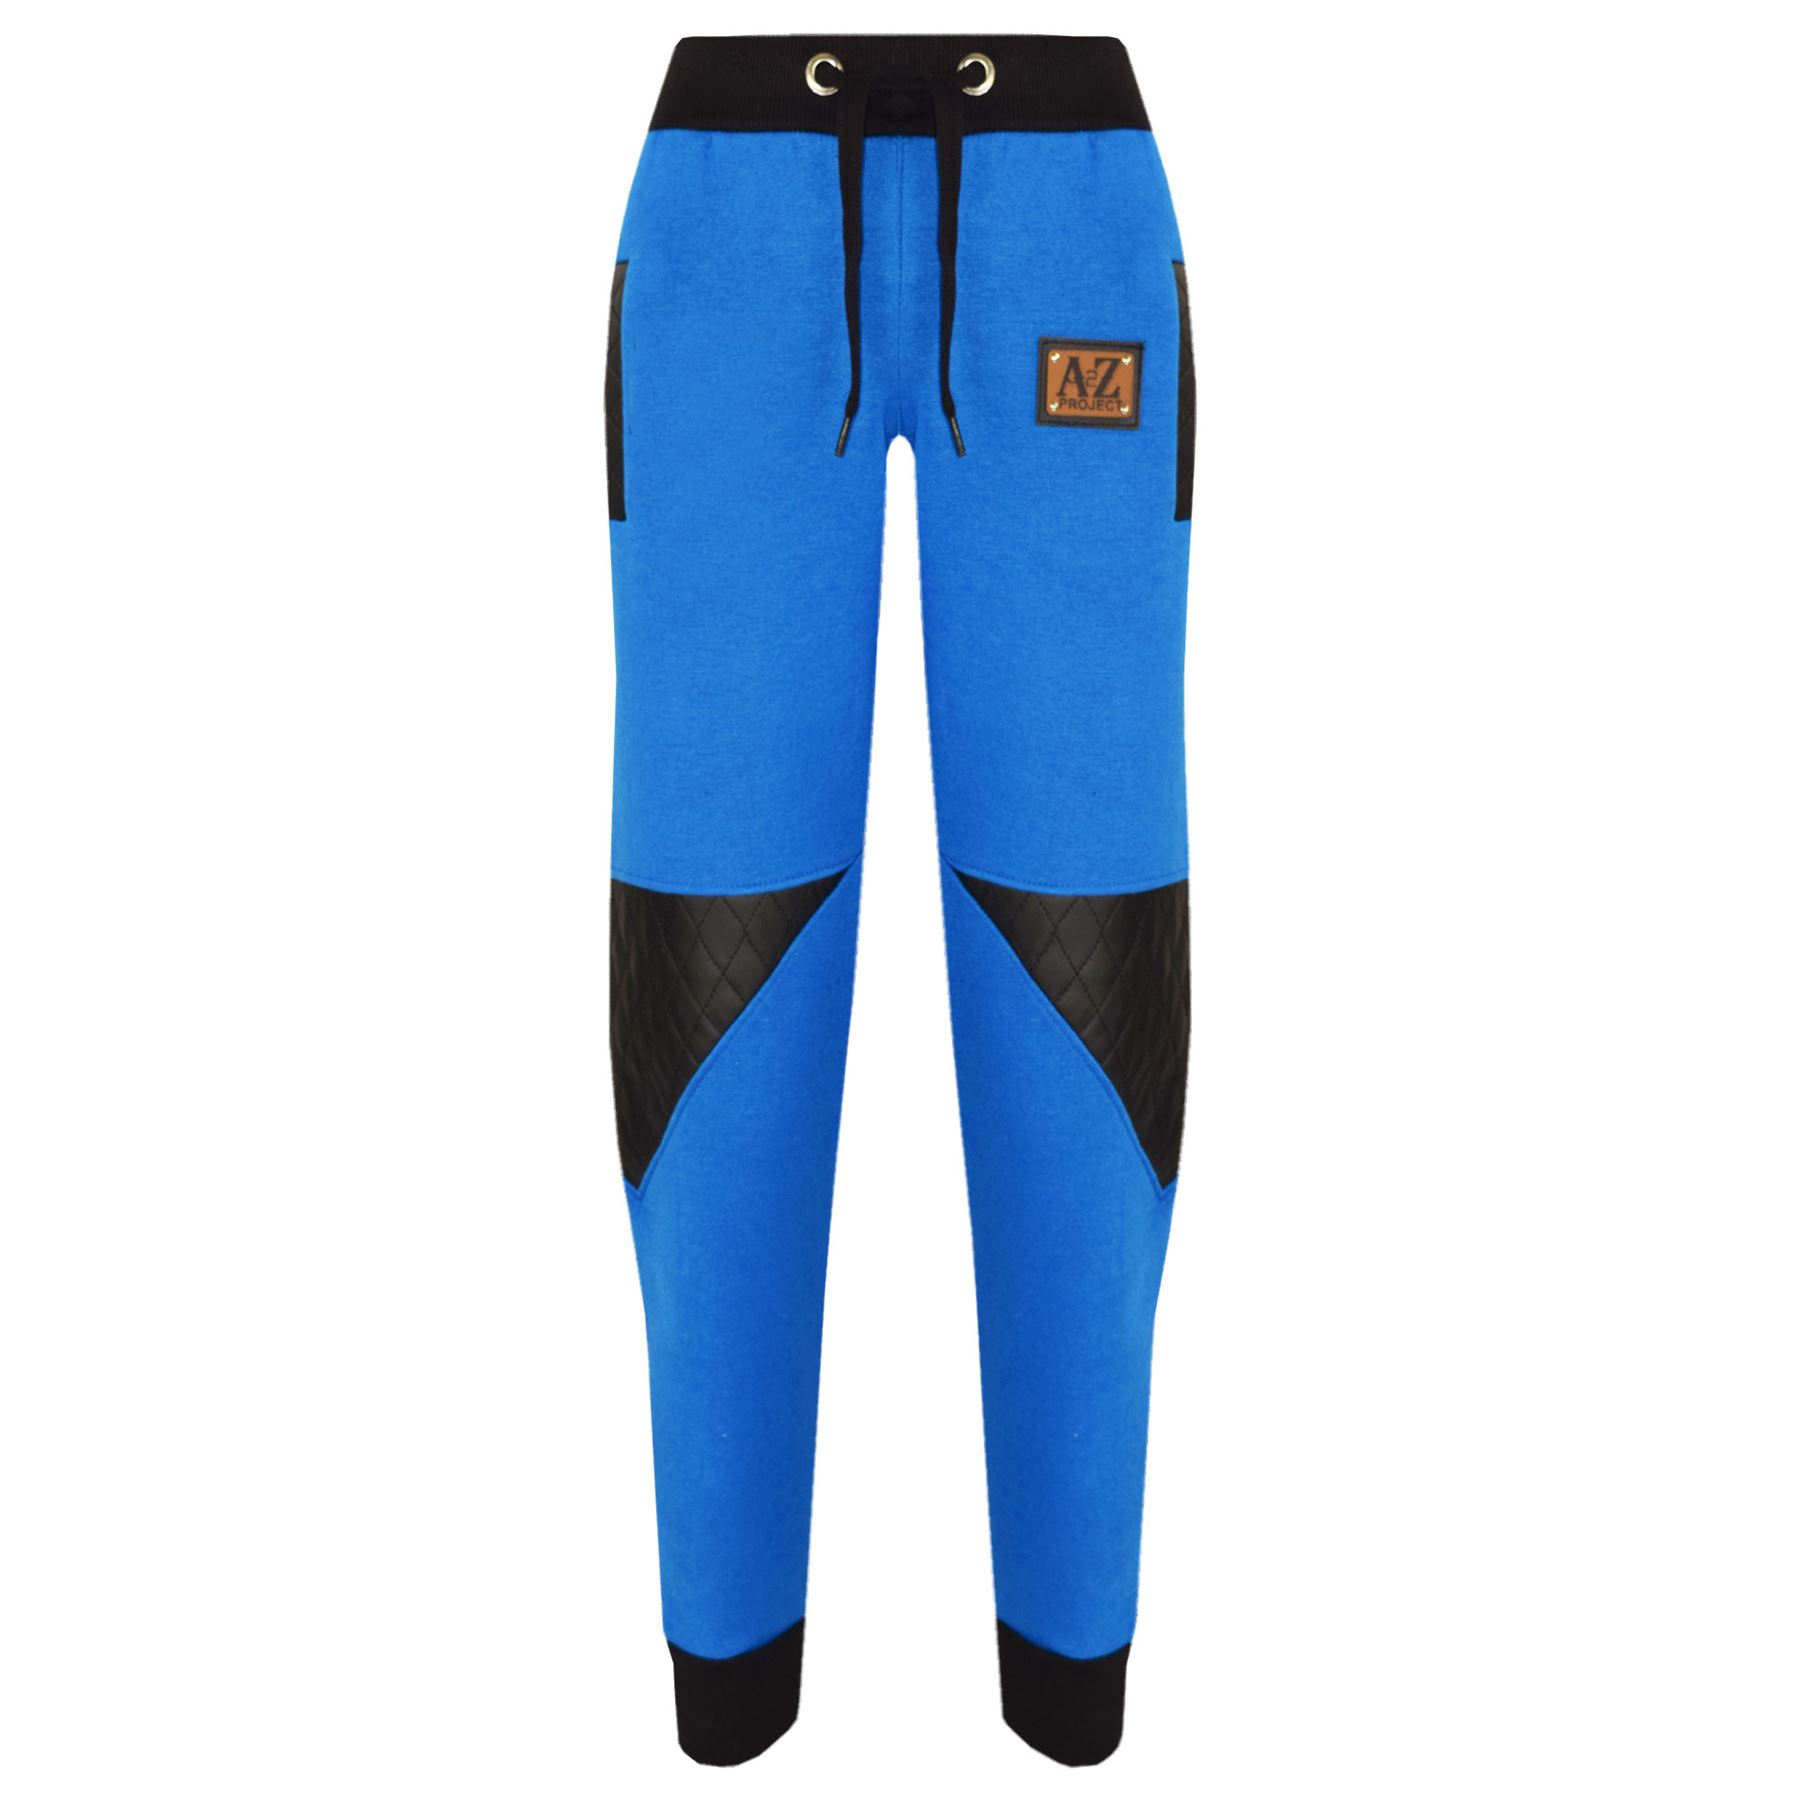 A2Z 4 Kids/® Kids Tracksuit Boys Girls Designers The Power Design Print Royal Zipped Top Hoodie /& Botom Jogging Suit Joggers Age 5 6 7 8 9 10 11 12 13 Years